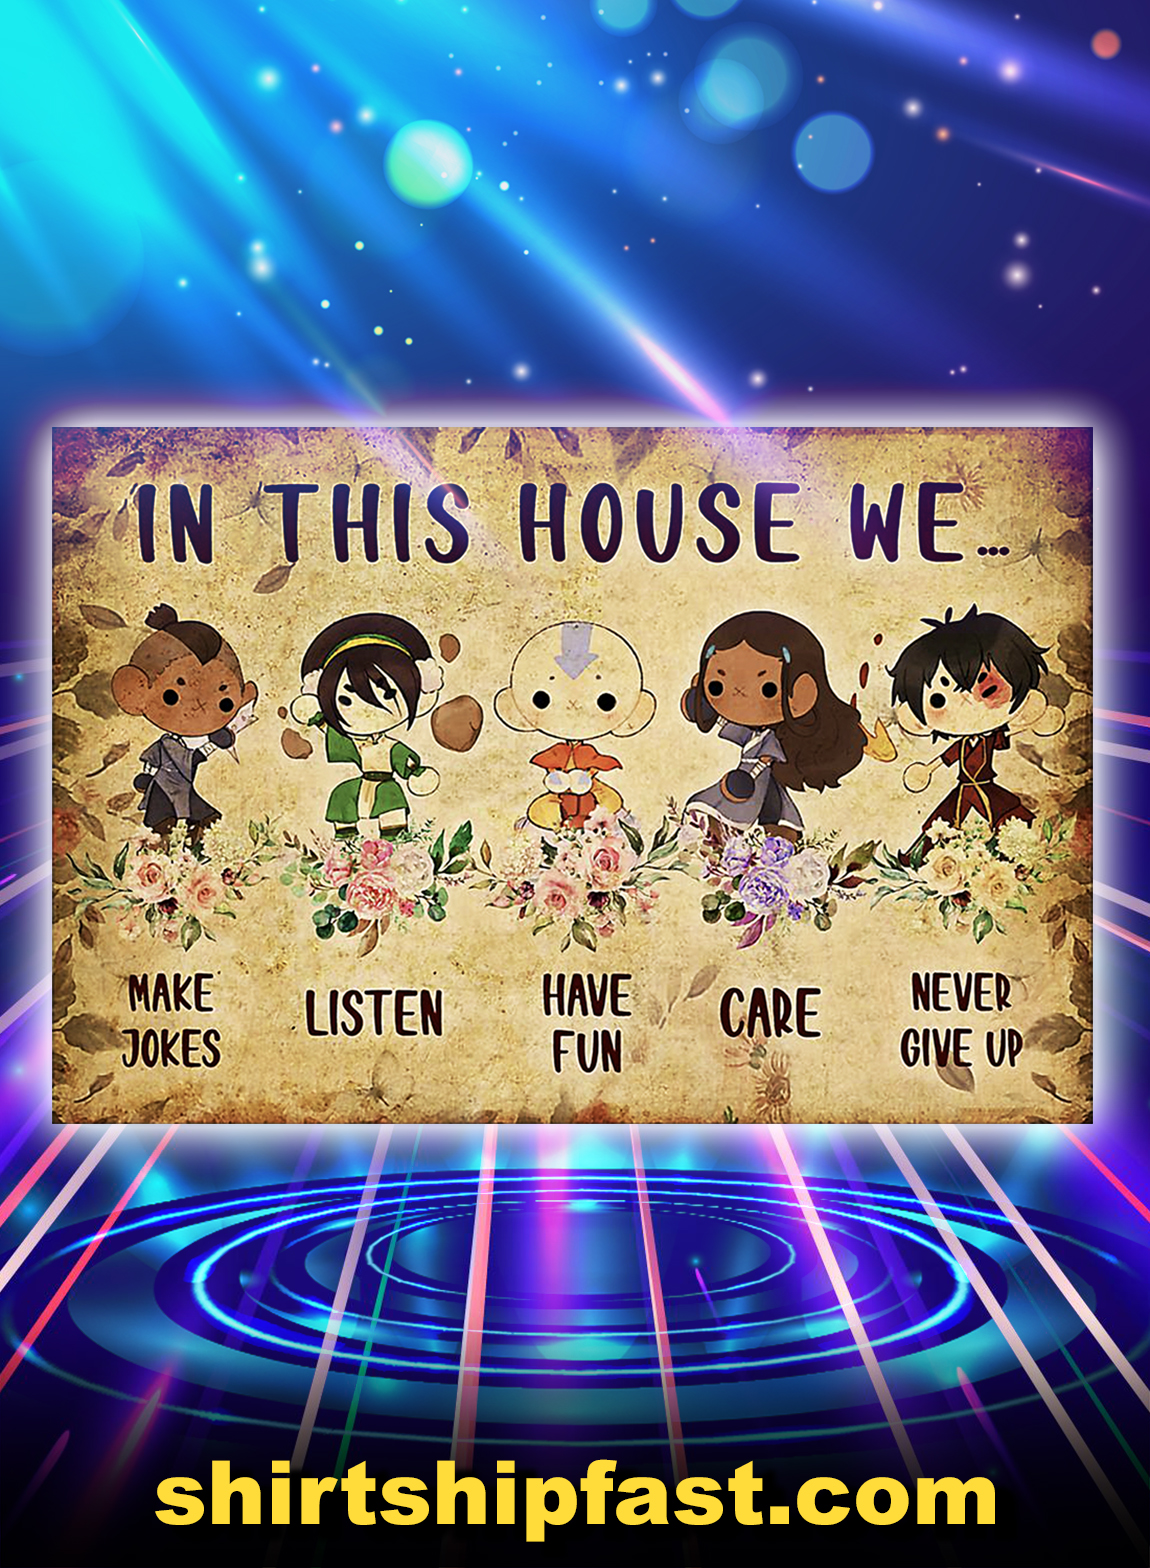 Flower last airbender in this house we poster - A3